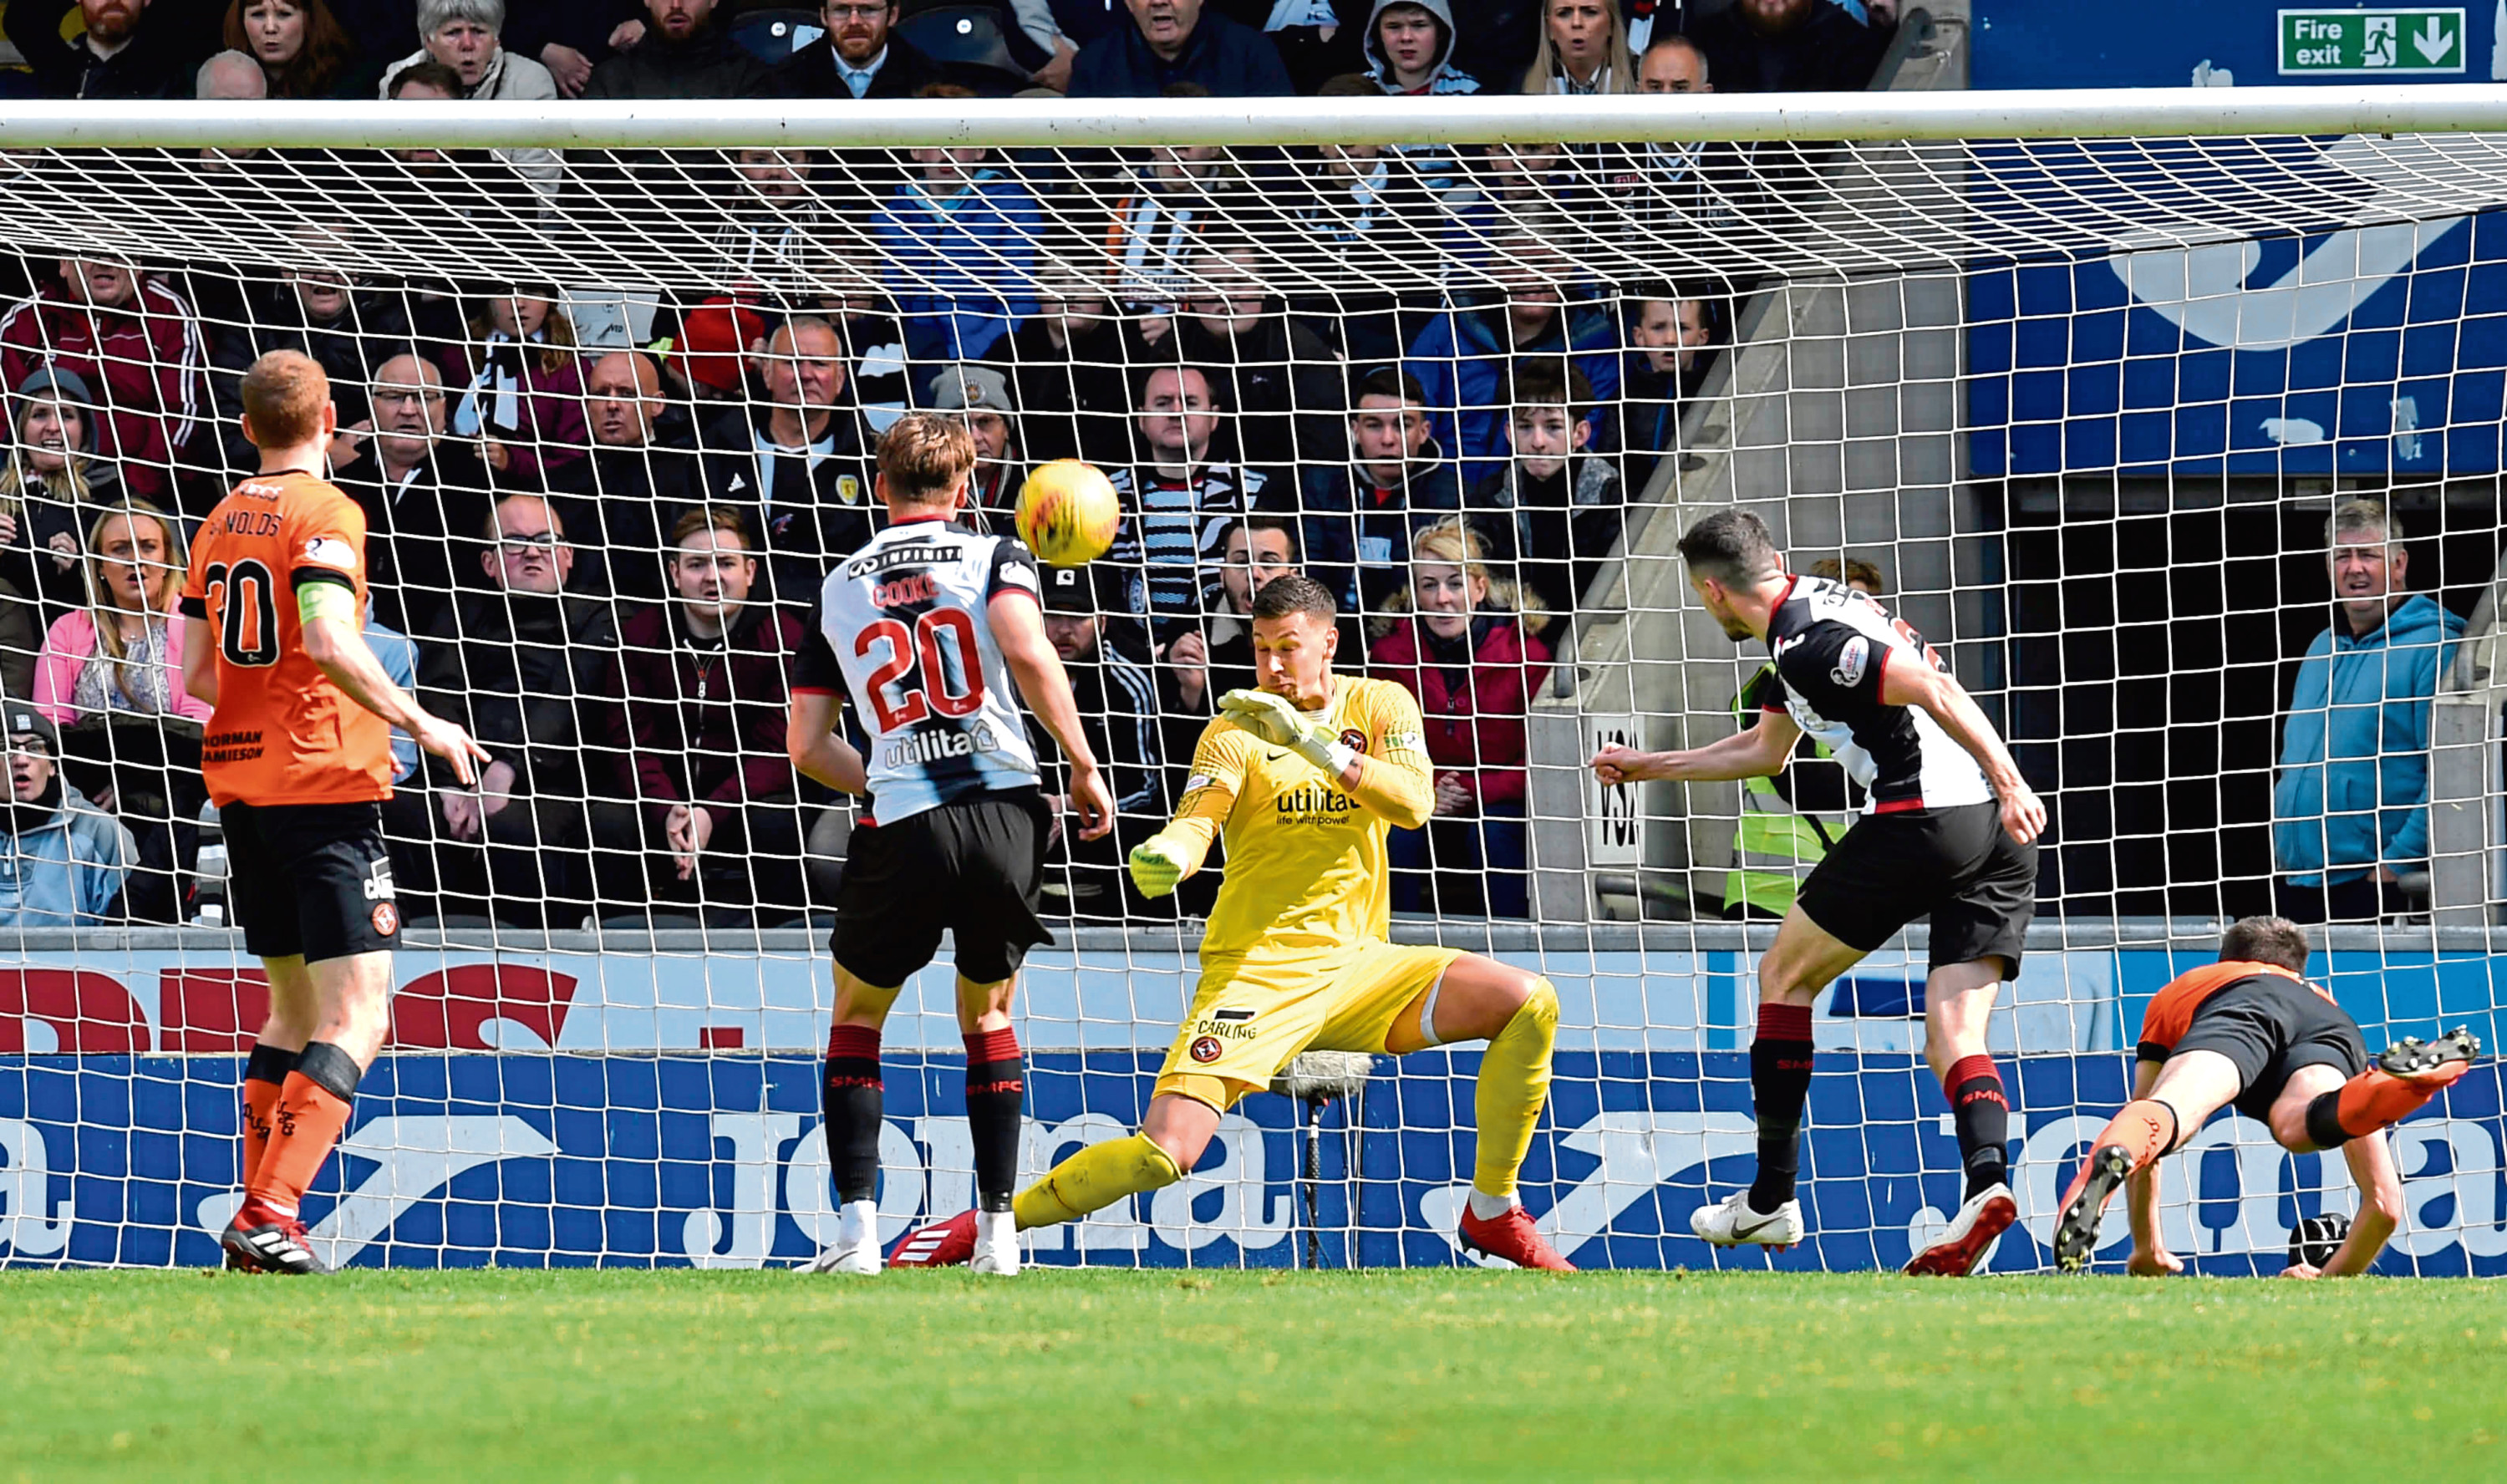 St Mirren's Paul McGinn has his headed chance saved from Dundee United's Benjamin Siegrist.